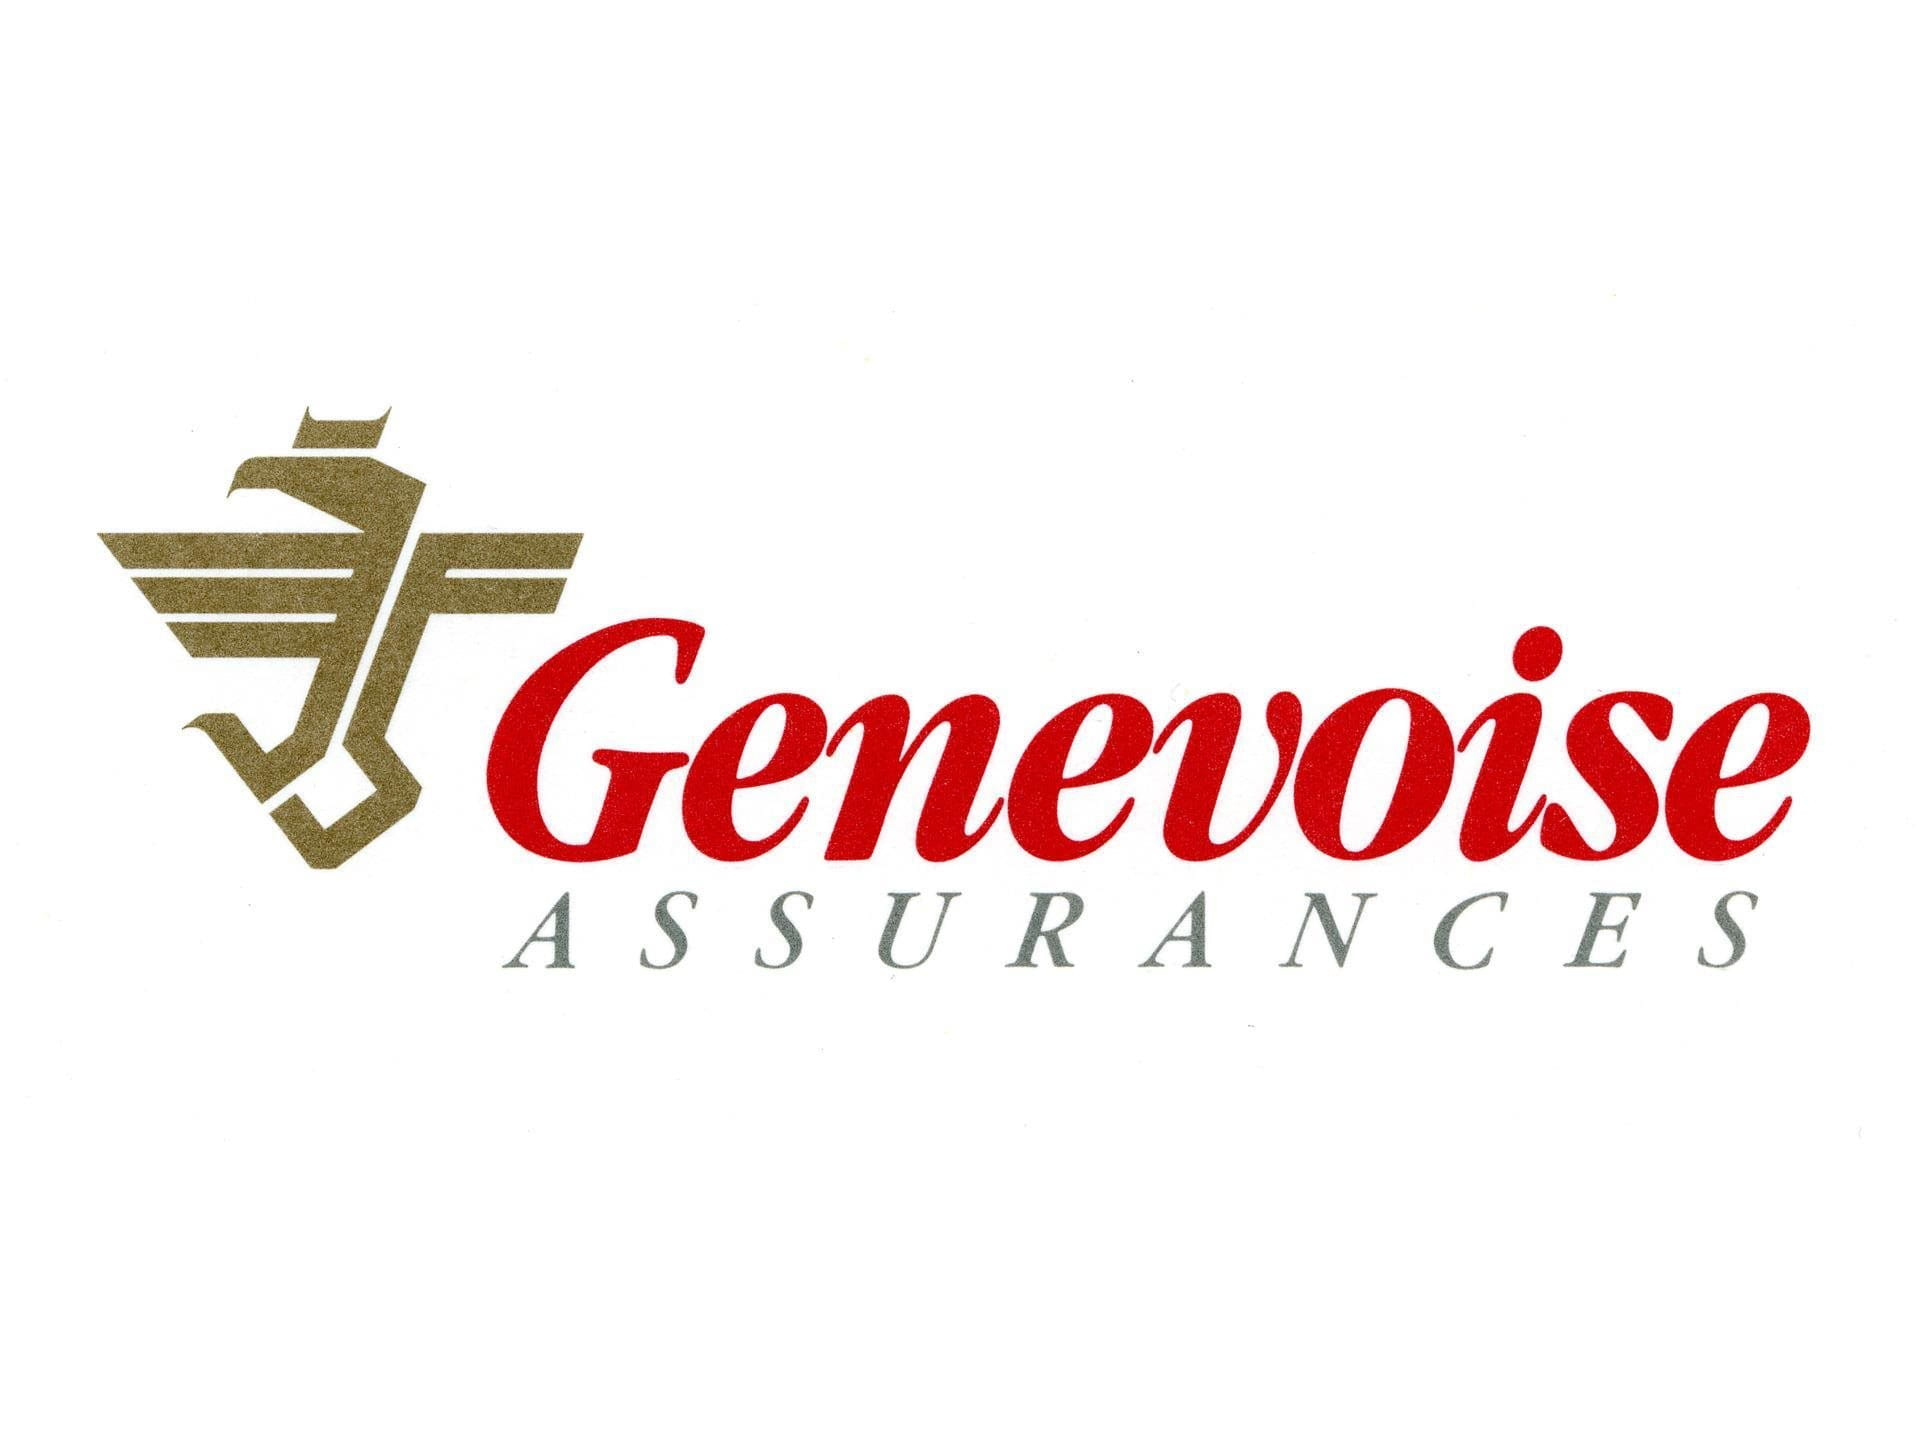 1991: Acquisition du groupe Genevoise Assurances